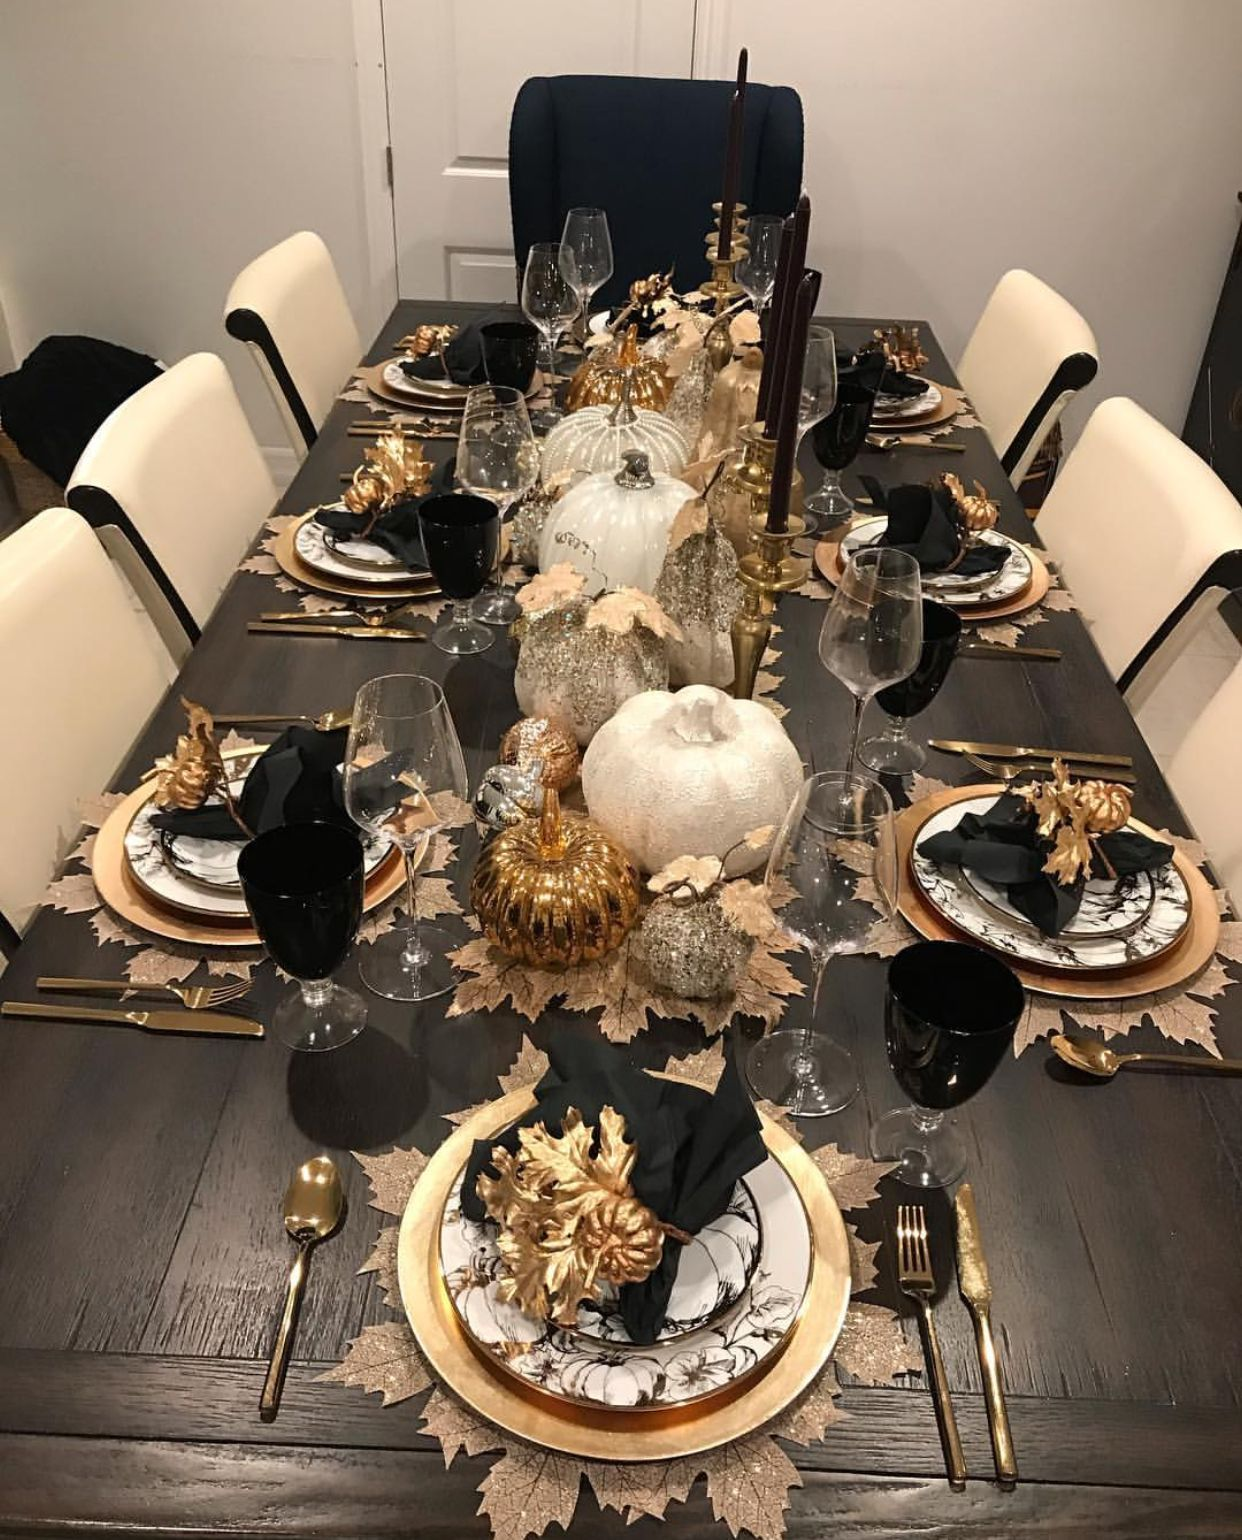 Table Settings Everyday Glam In 2020 Dinning Table Decor Table Settings Everyday Dining Room Table Decor